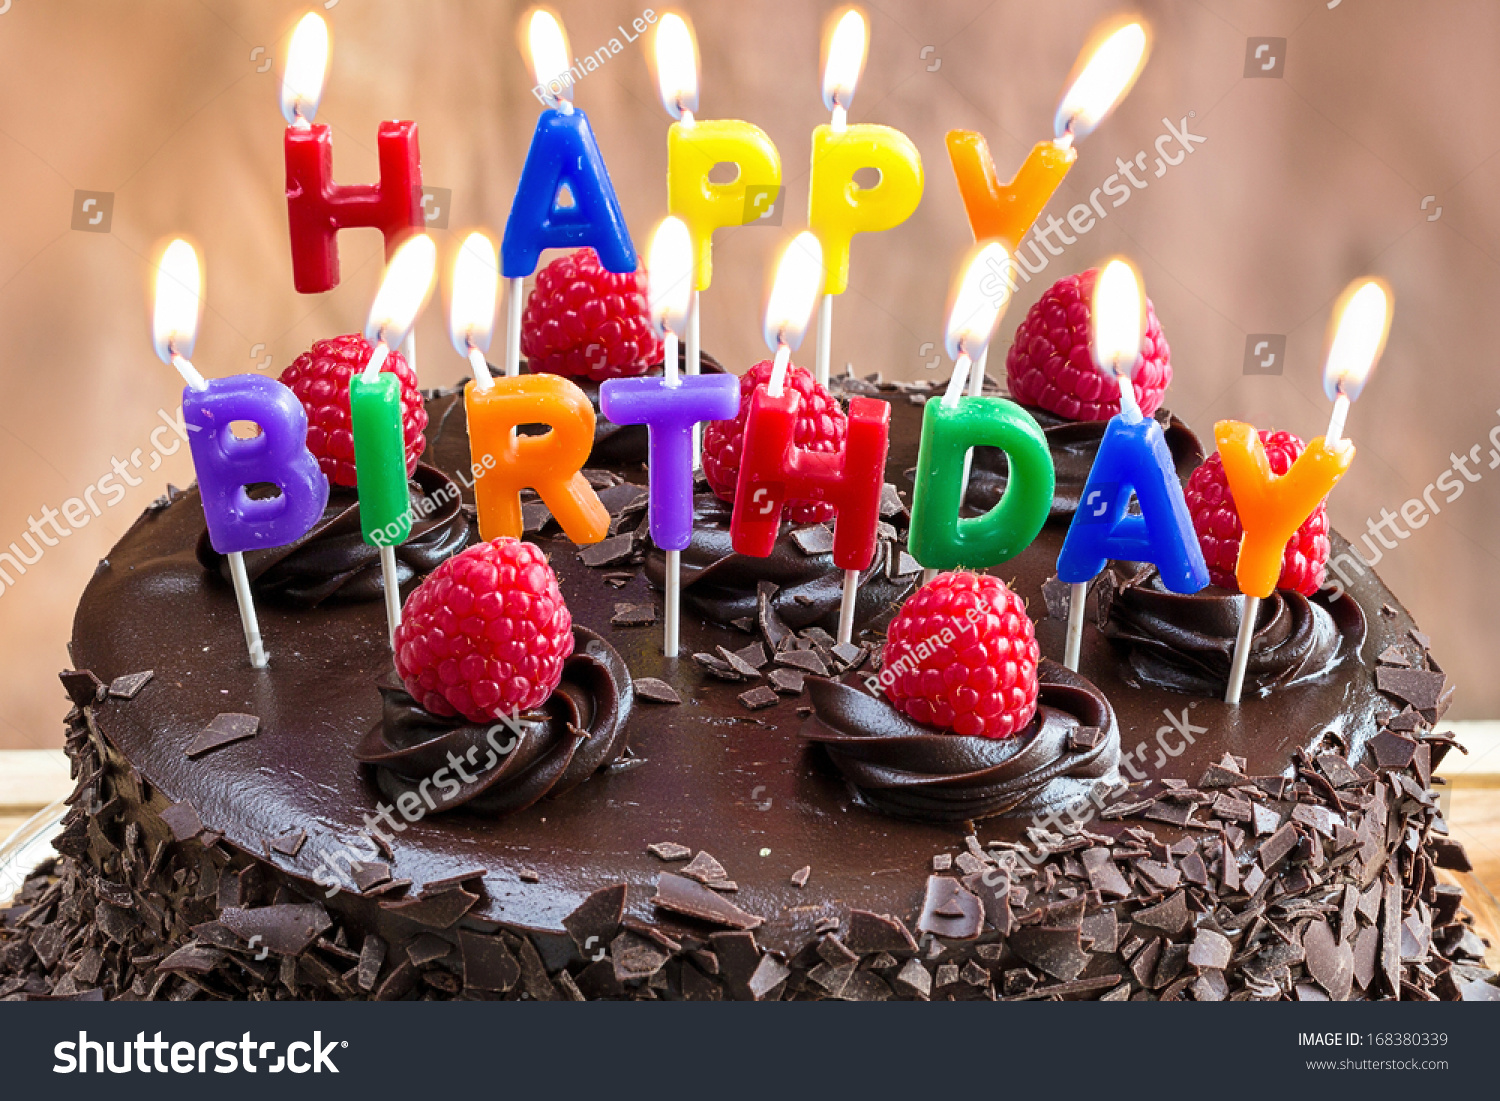 Happy Birthday Candles On Chocolate Cake Stock Photo ...